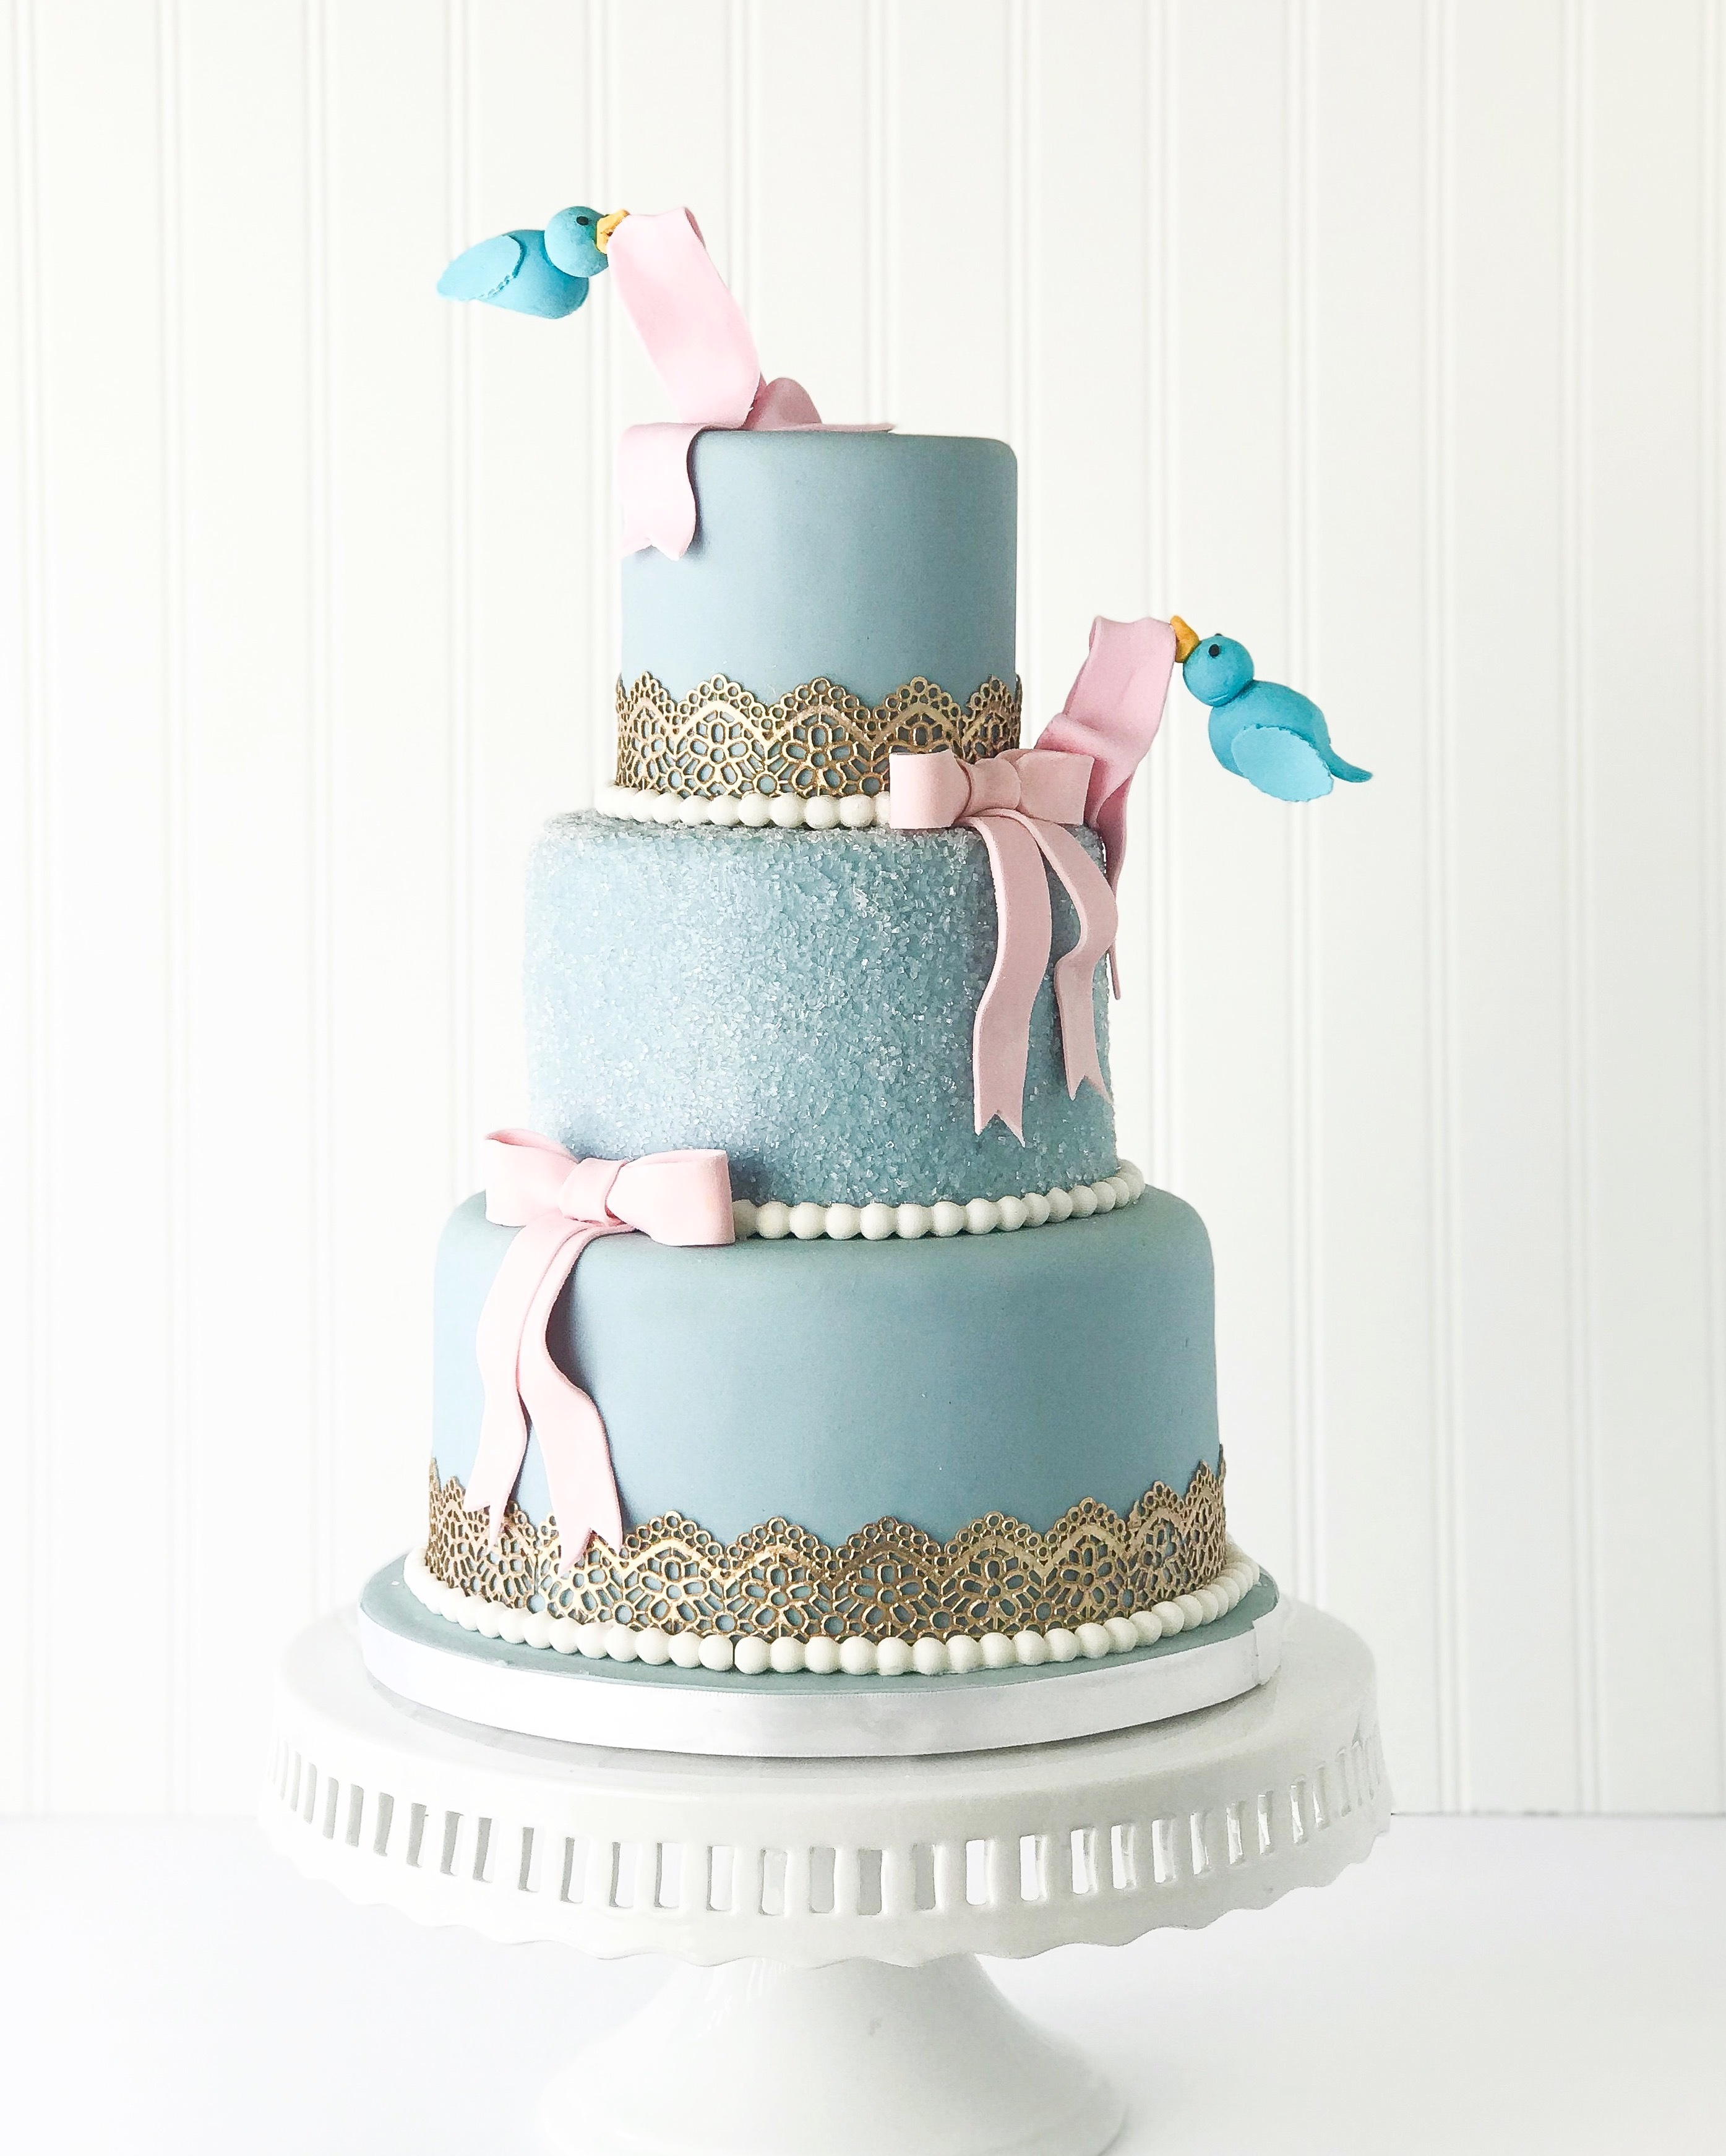 Baby blue fondant wedding cake with pink bows